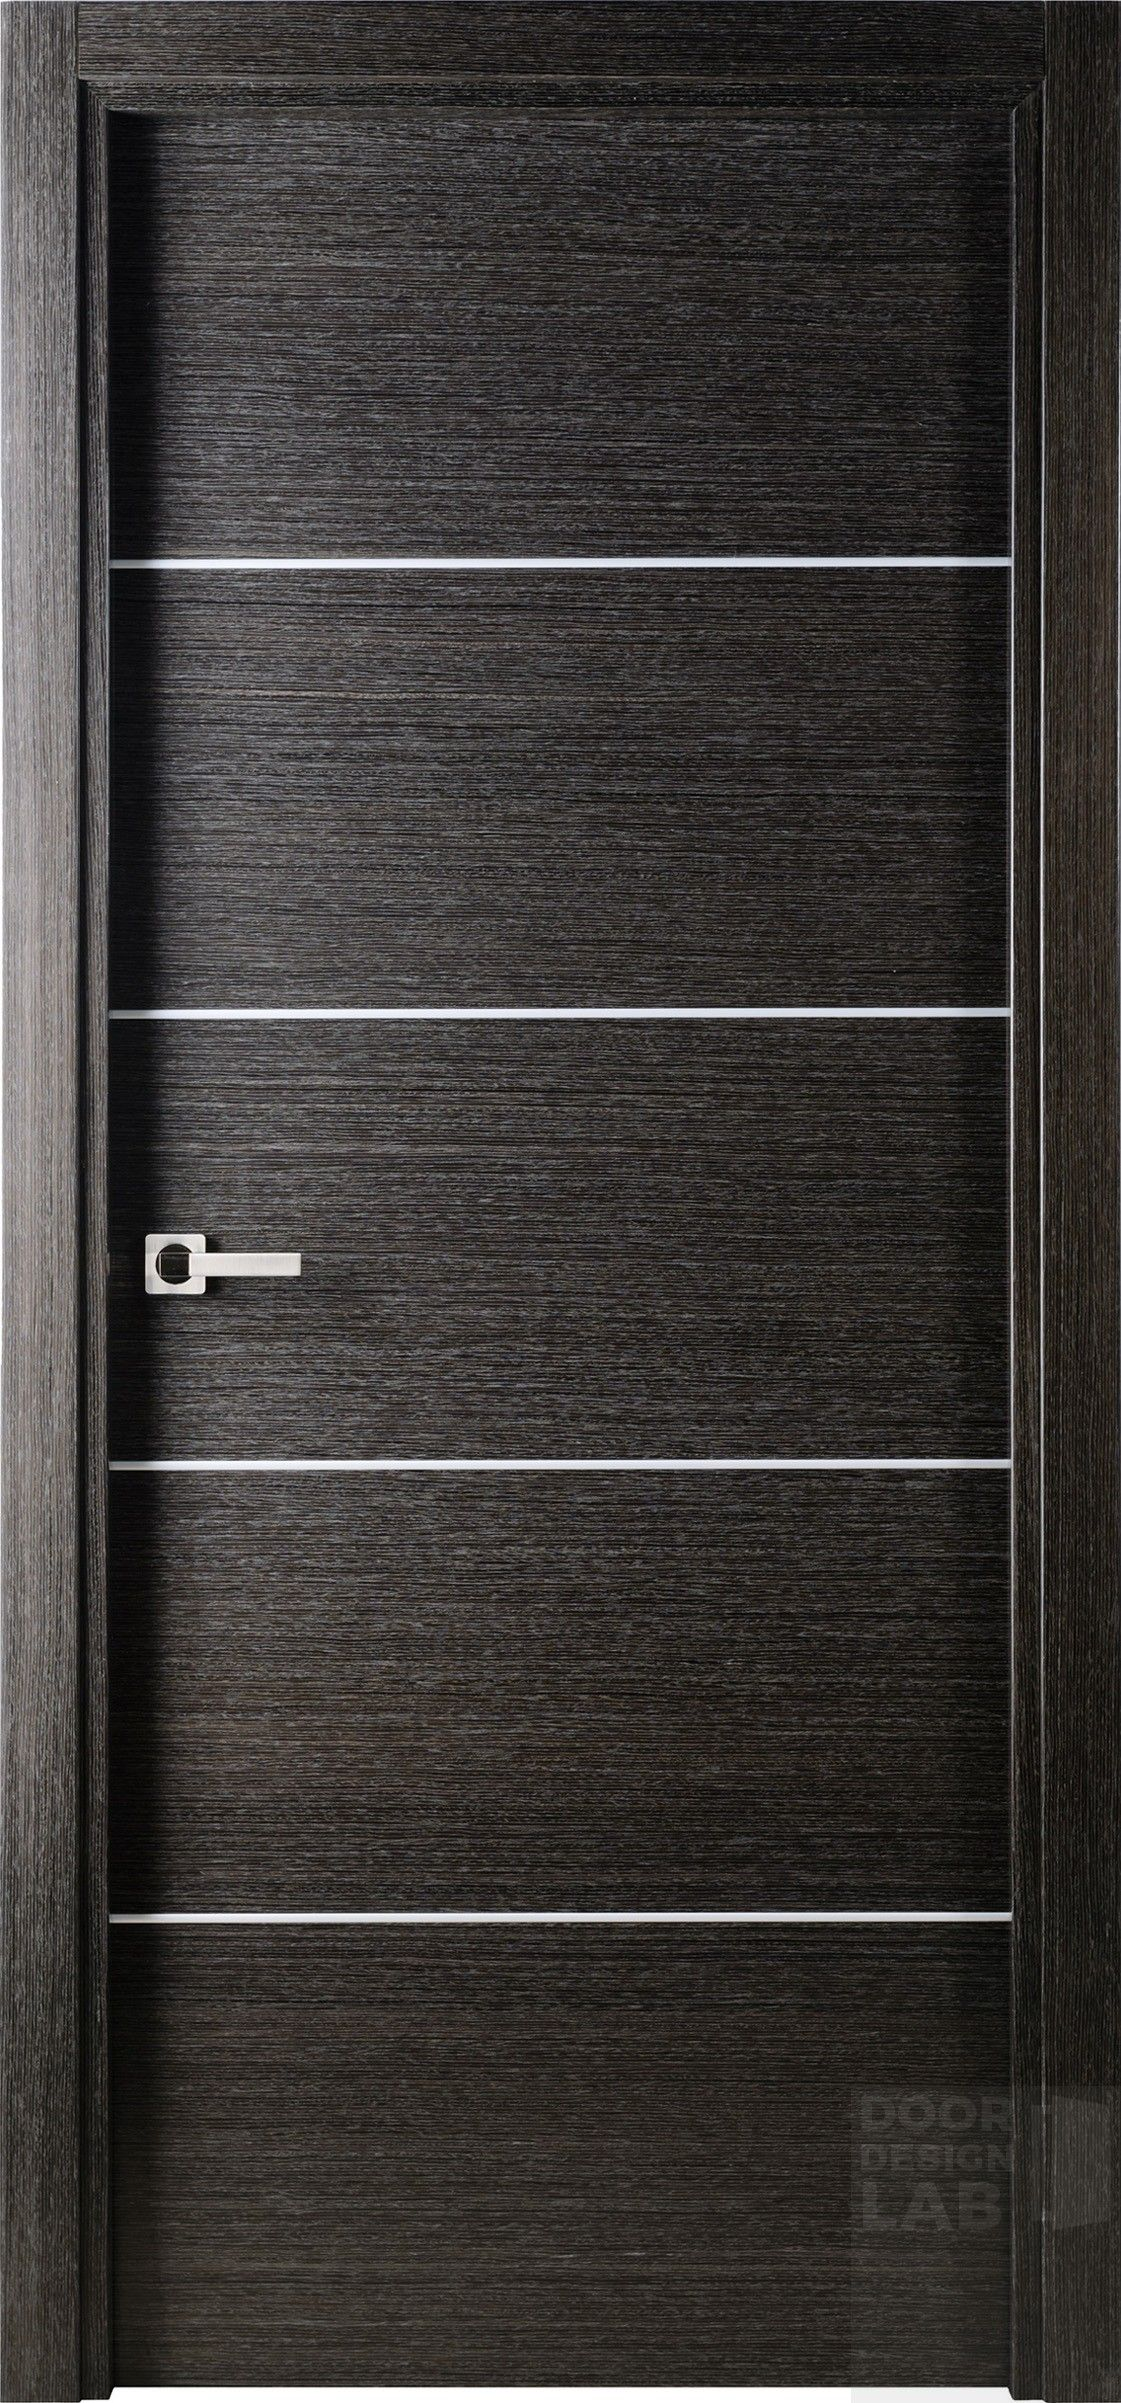 18 Avanti Interior Doors Ideas Doors Interior Doors Interior Modern Wood Veneer